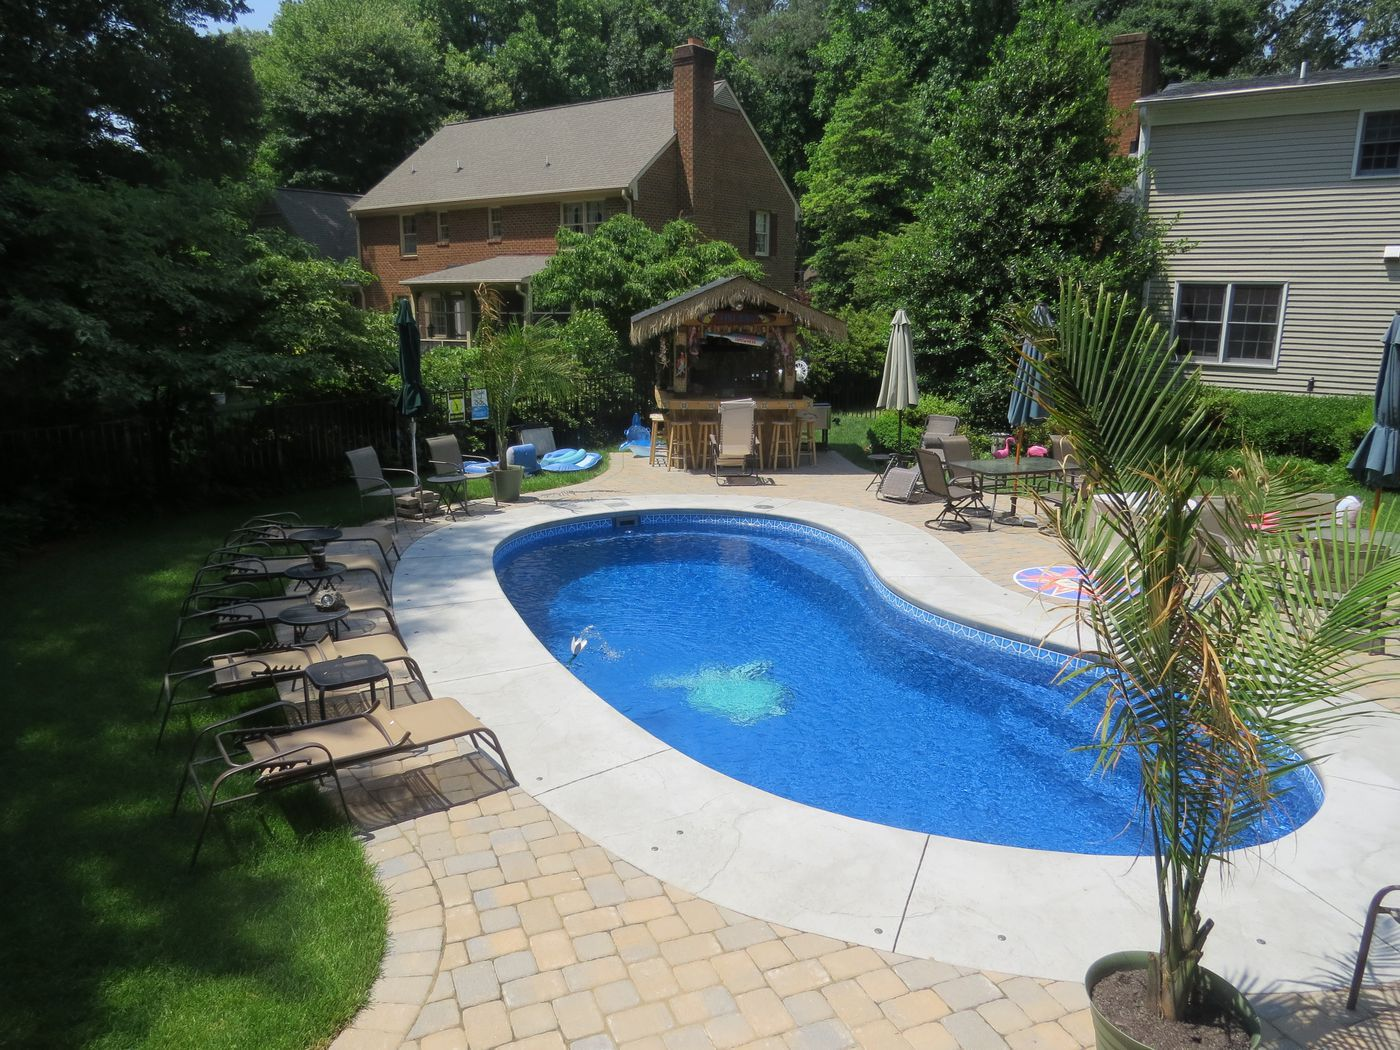 Fiberglass pool installed by river pools and spas yorktown va for Pool shapes with spa